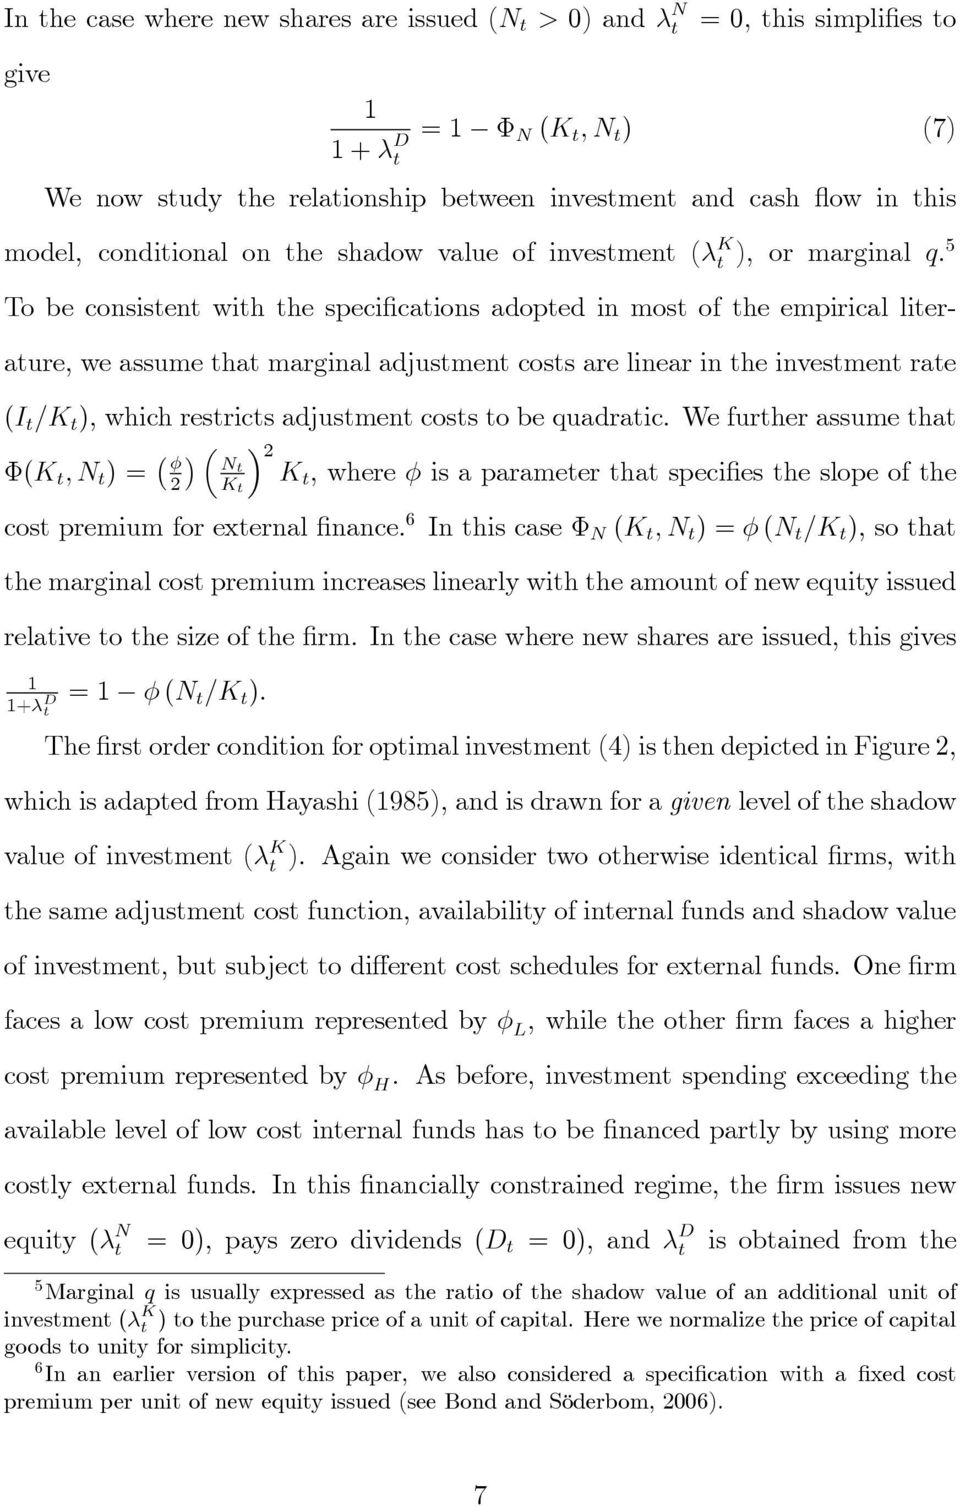 5 To be consistent with the speci cations adopted in most of the empirical literature, we assume that marginal adjustment costs are linear in the investment rate (I t = ), which restricts adjustment